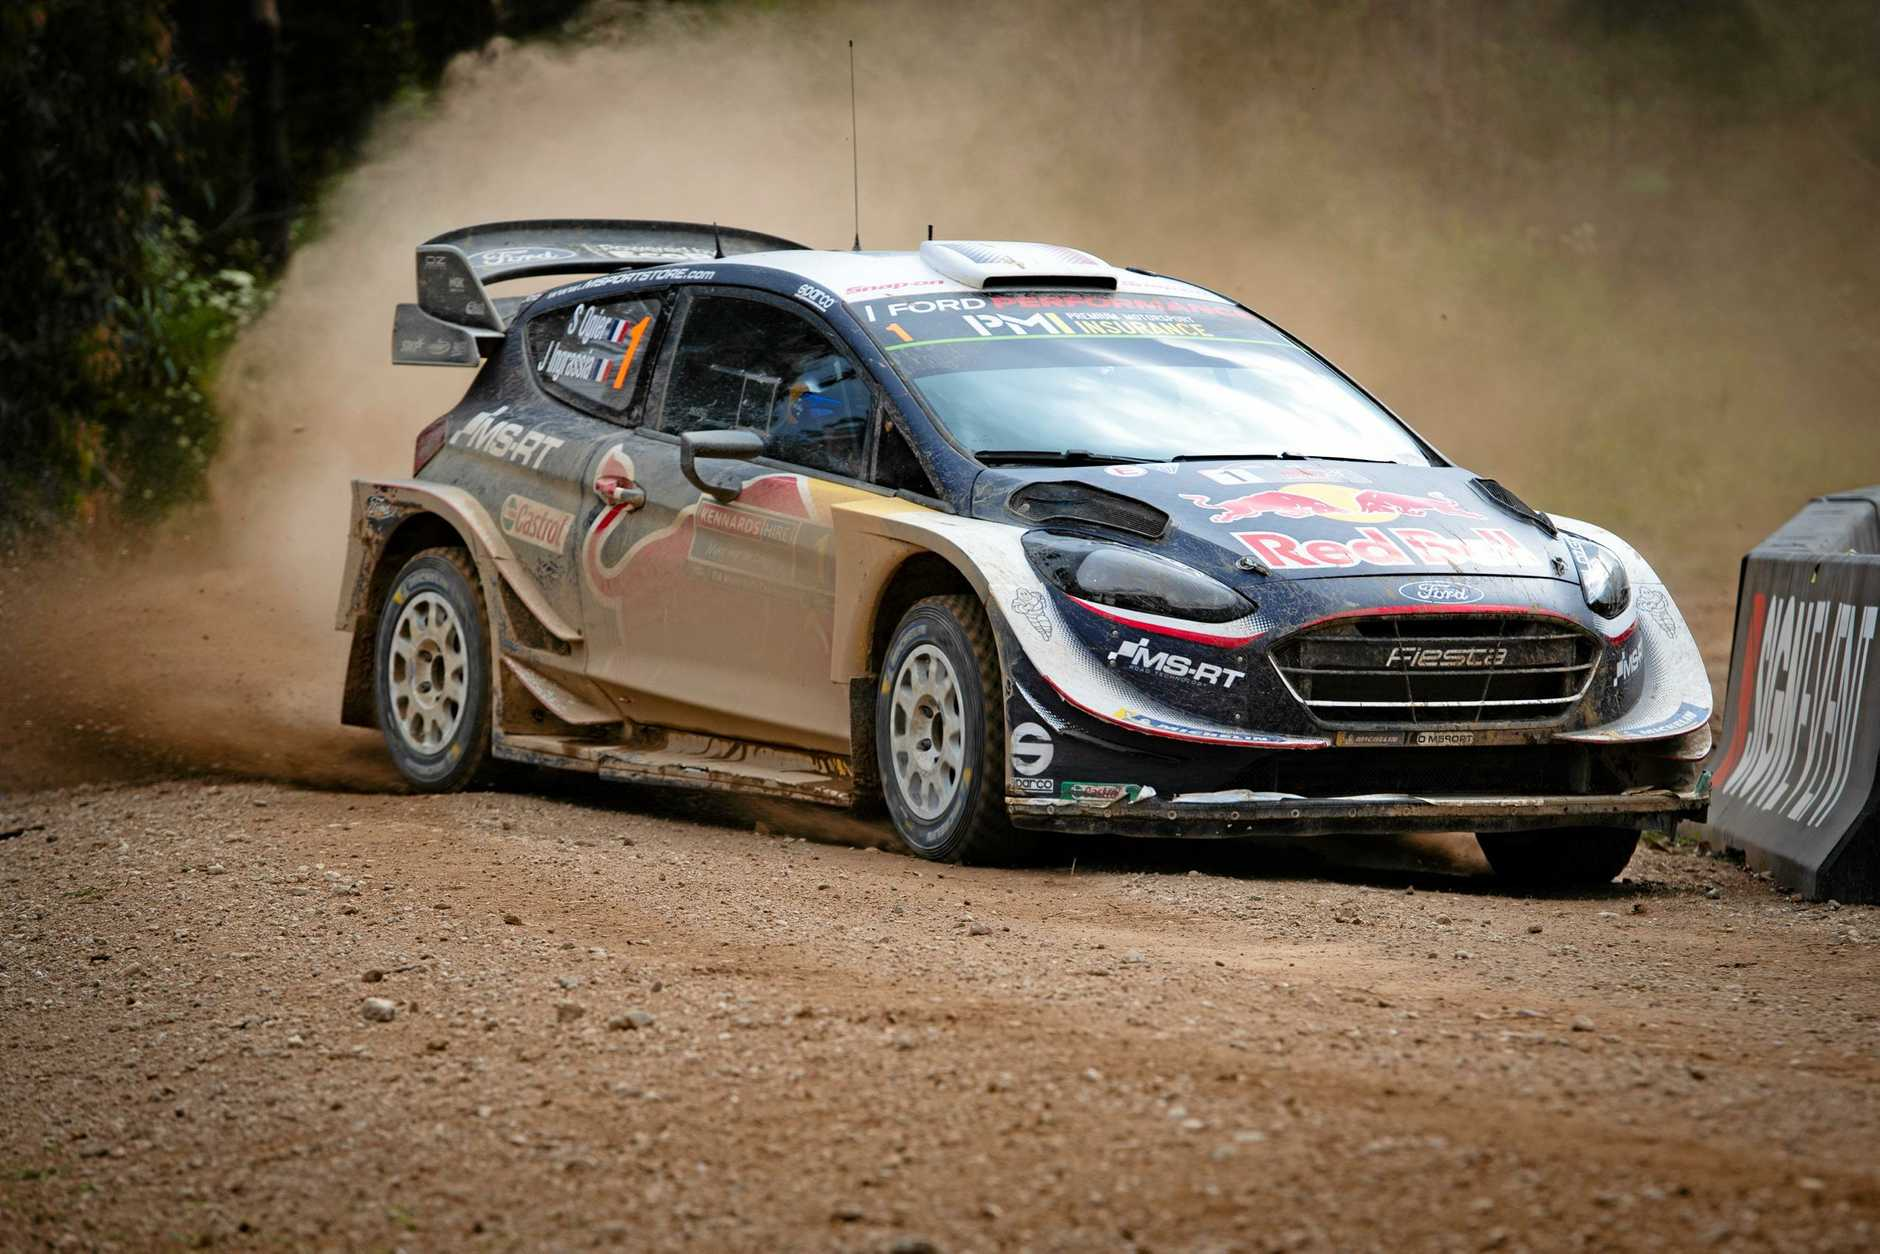 Sebastien Ogier in action on the final day of the WRC 2018 Kennards Hire Rally Australia.